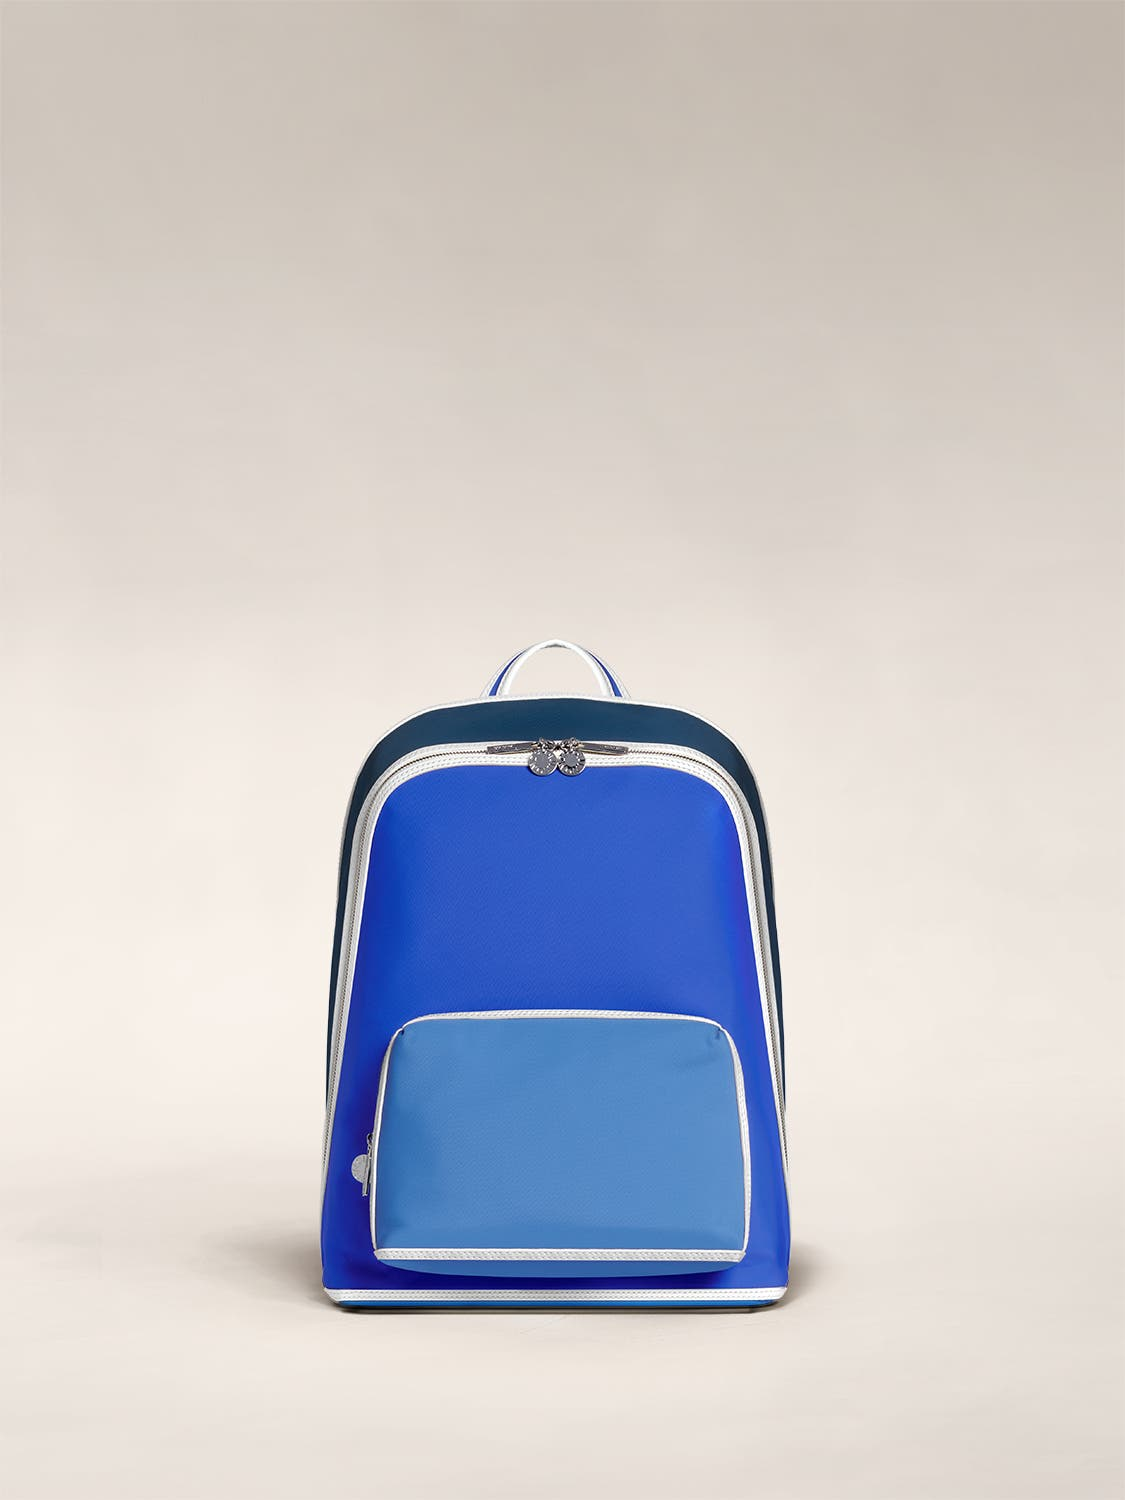 The Front Pocket Backpack by Ji Won Choi in blue geometric print